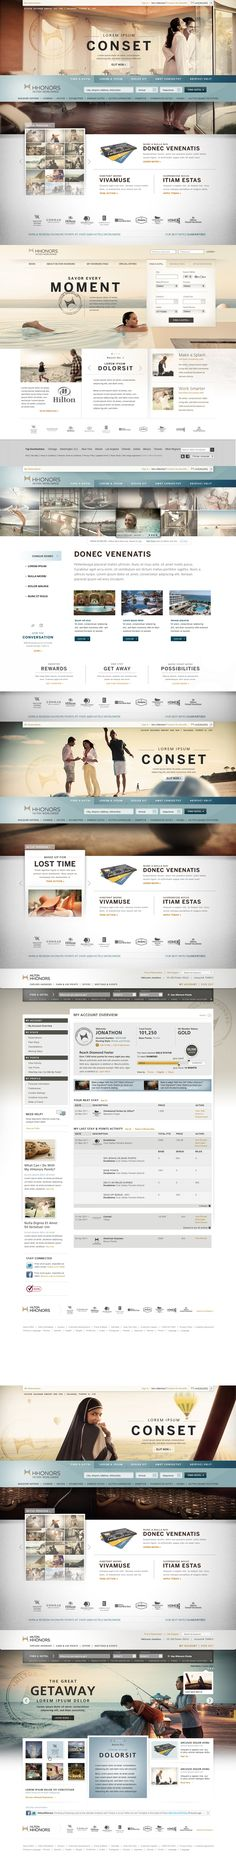 Hilton Web re-design. Layout ideas. Complete mockup. Graphic design. Inspirational. #webdesign